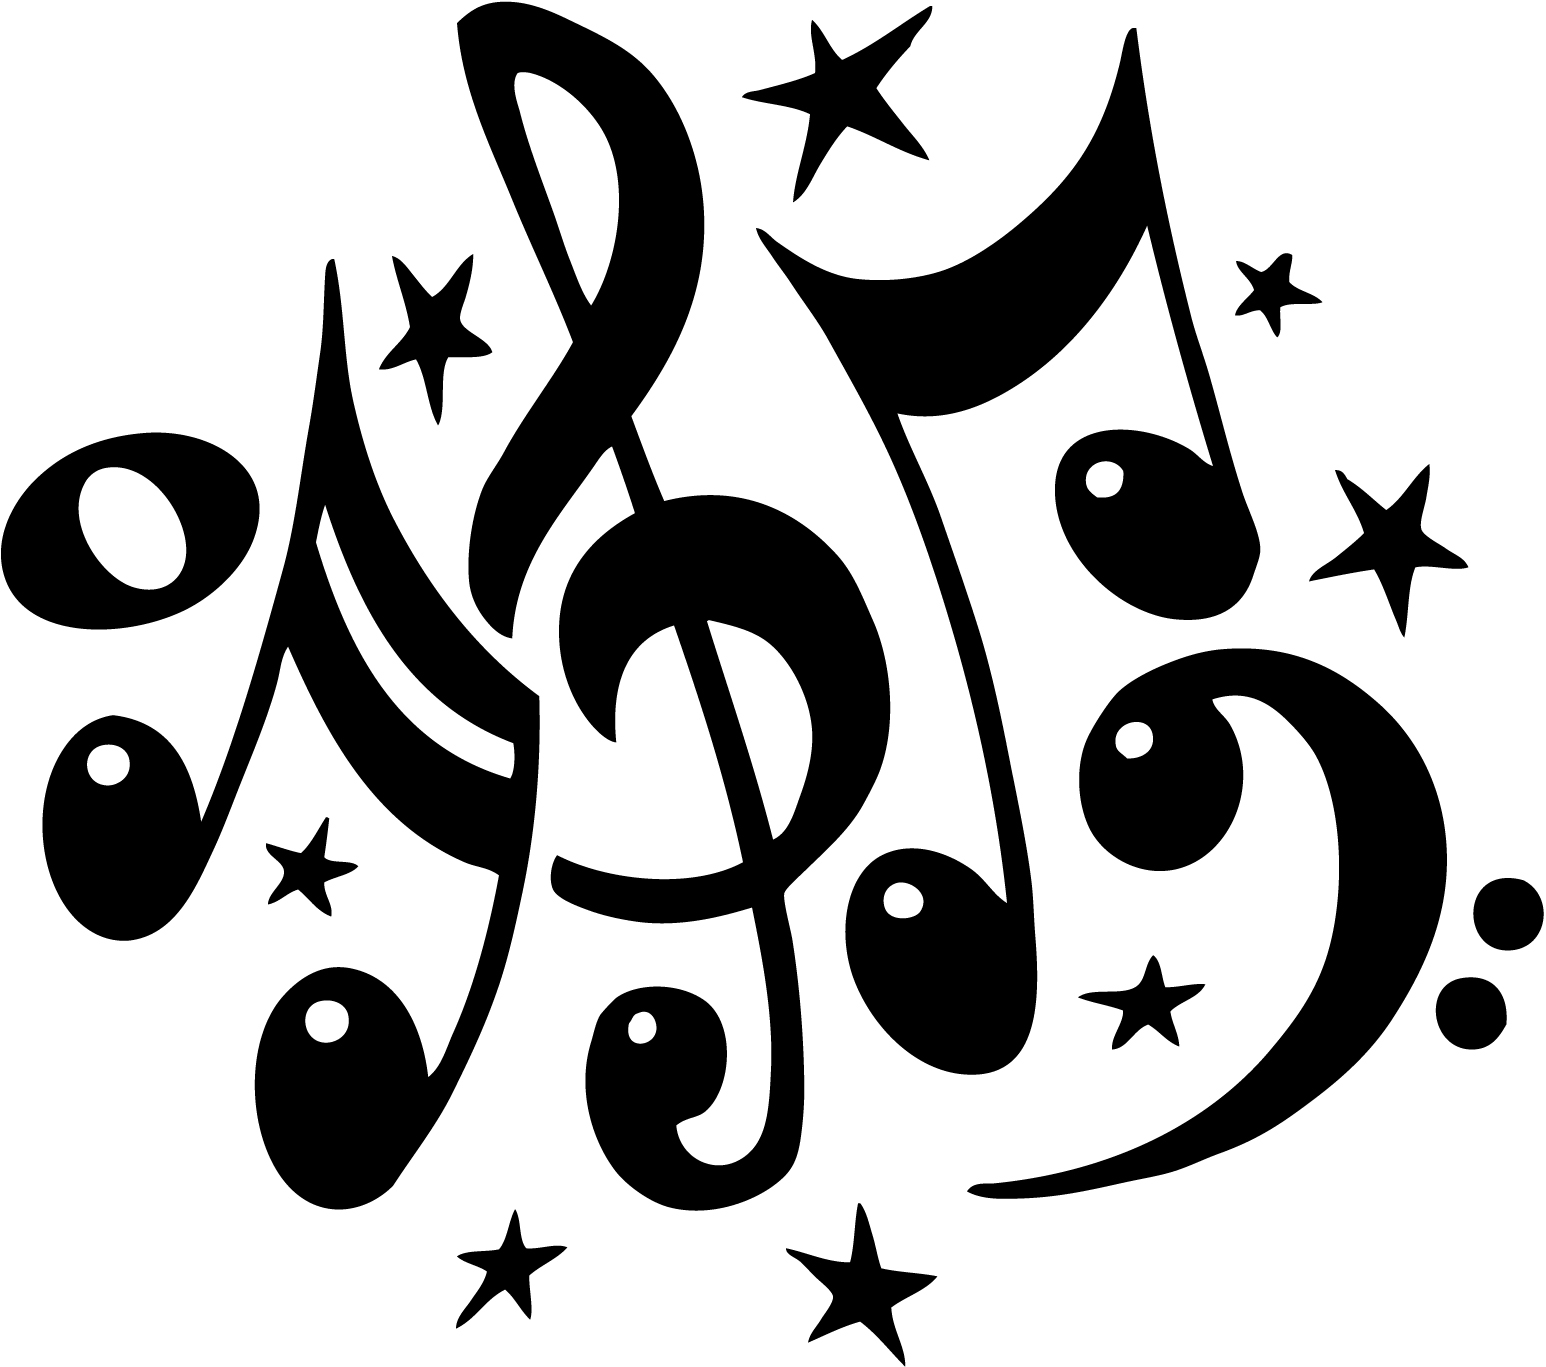 Musical-notes-free-clip-art- .-Musical-notes-free-clip-art- .-6